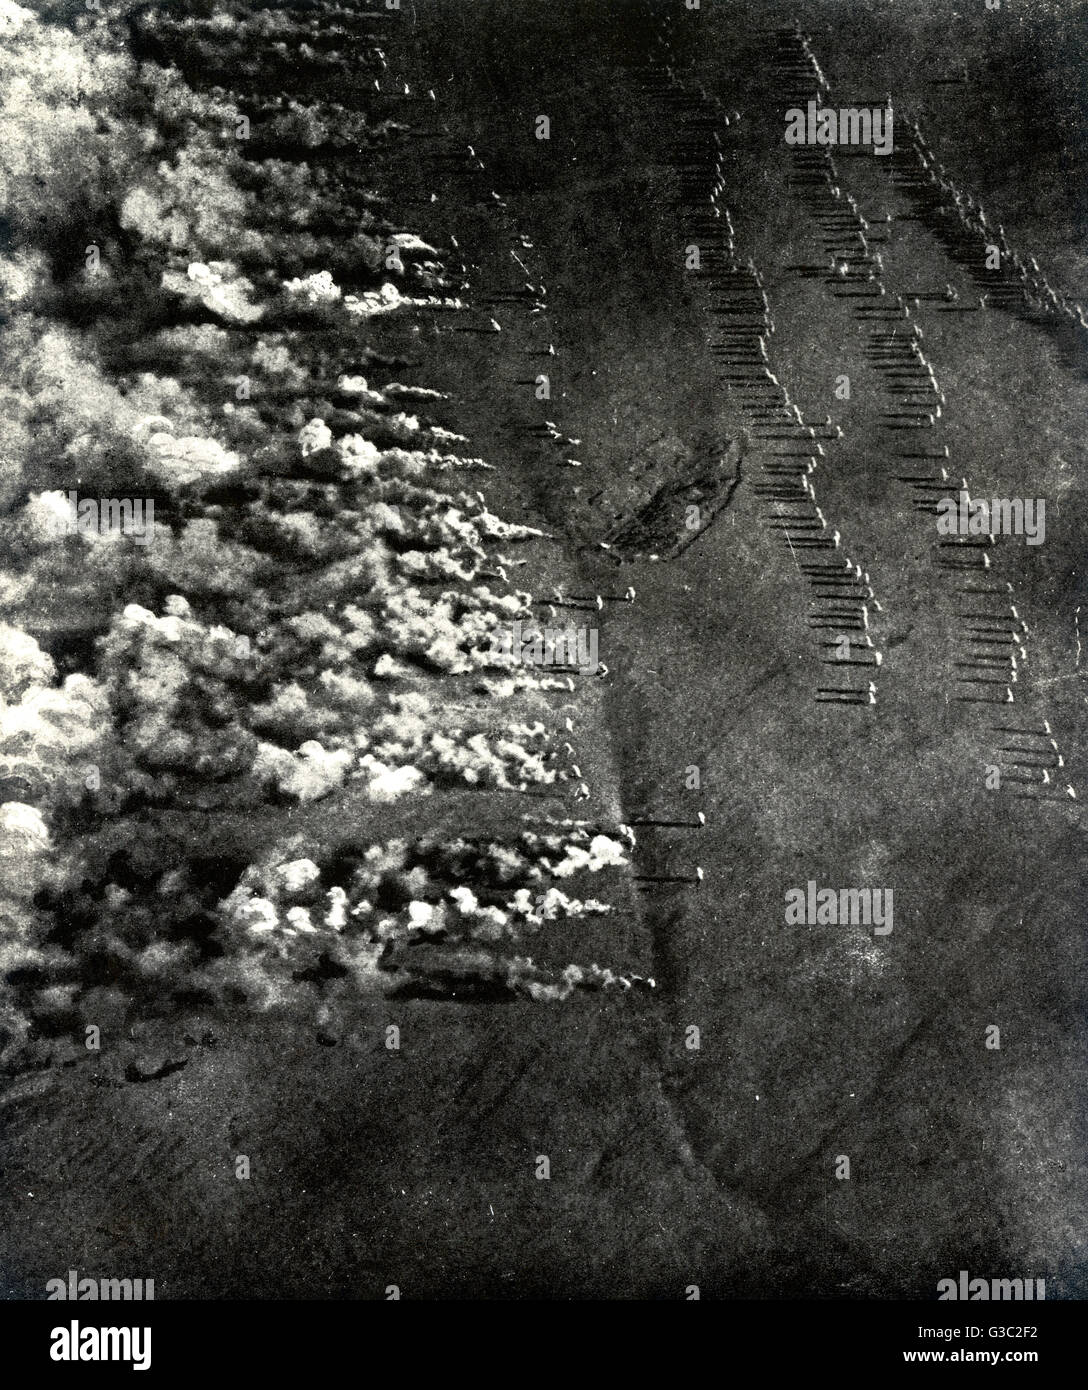 WW1 - Illustrating a gas attack in the eastern war zone from an aerial viewpoint. The poisonous cloud rolls before - Stock Image